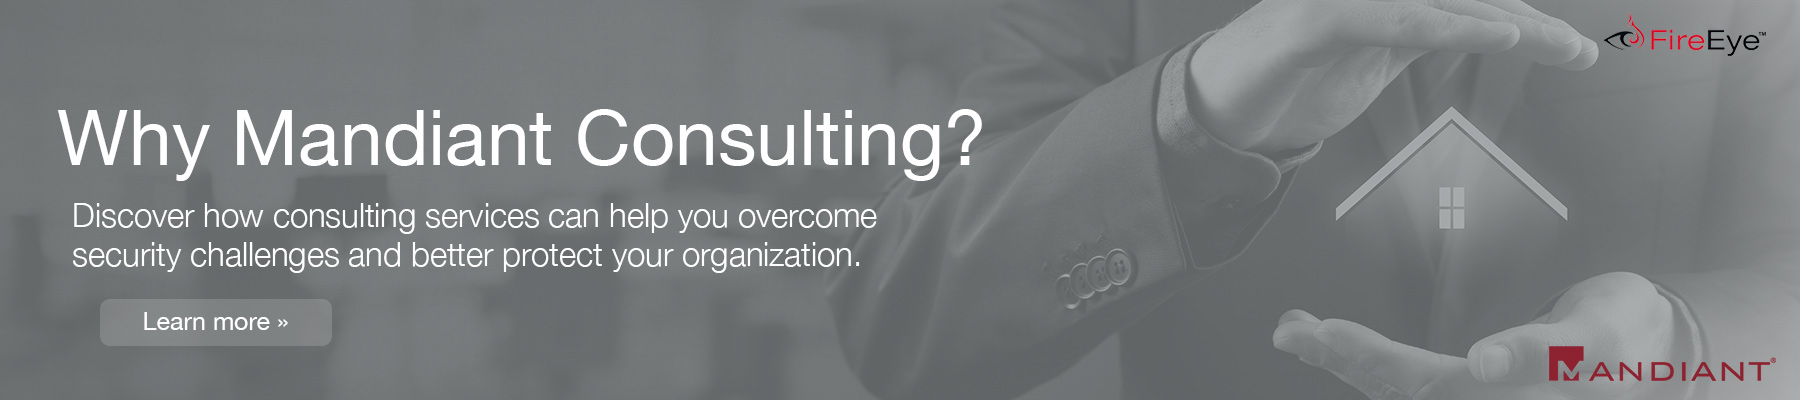 Why Mandiant Consulting